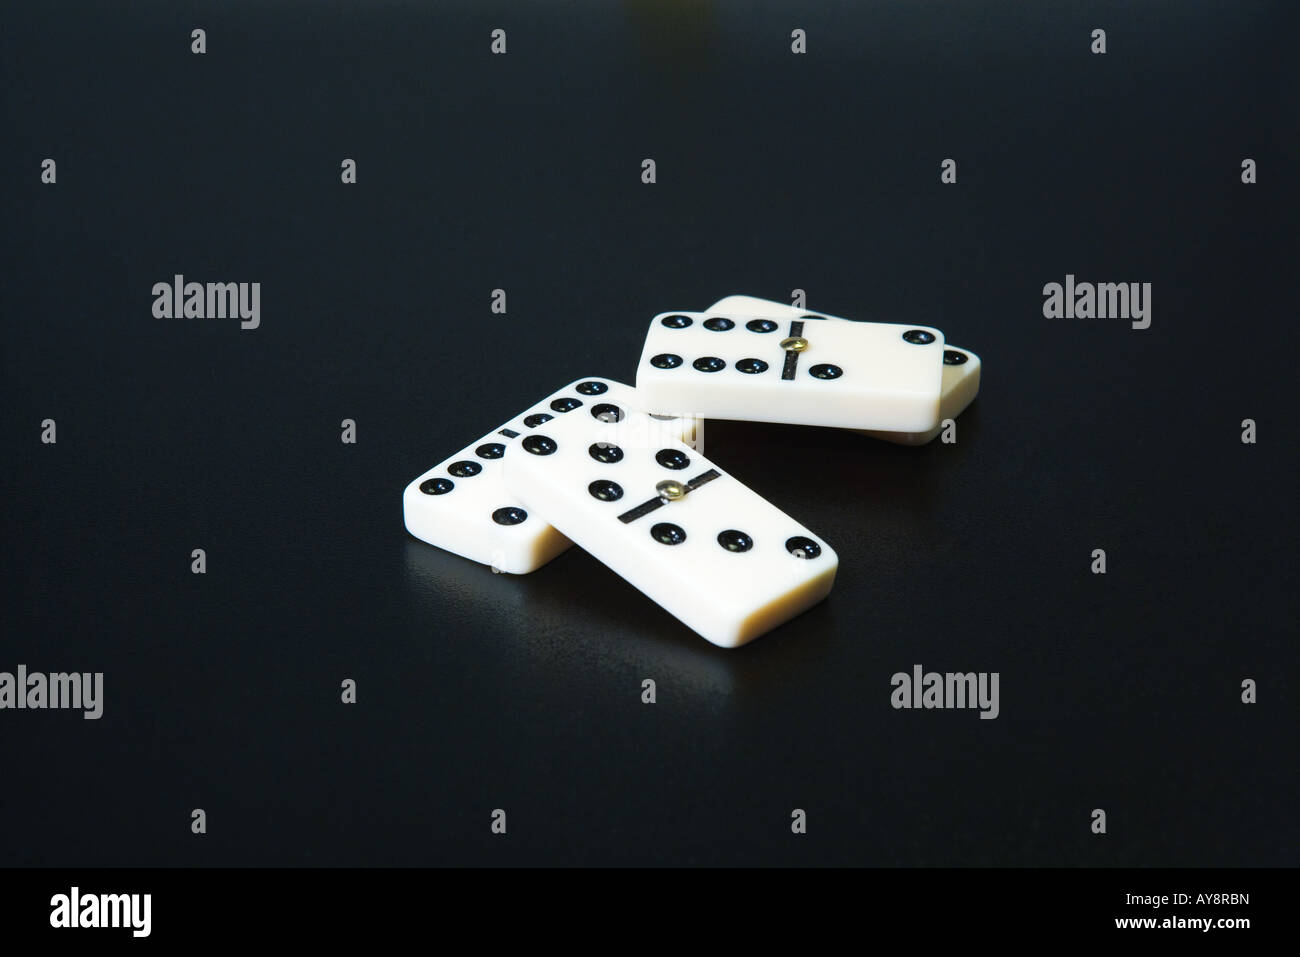 Dominoes, close-up - Stock Image